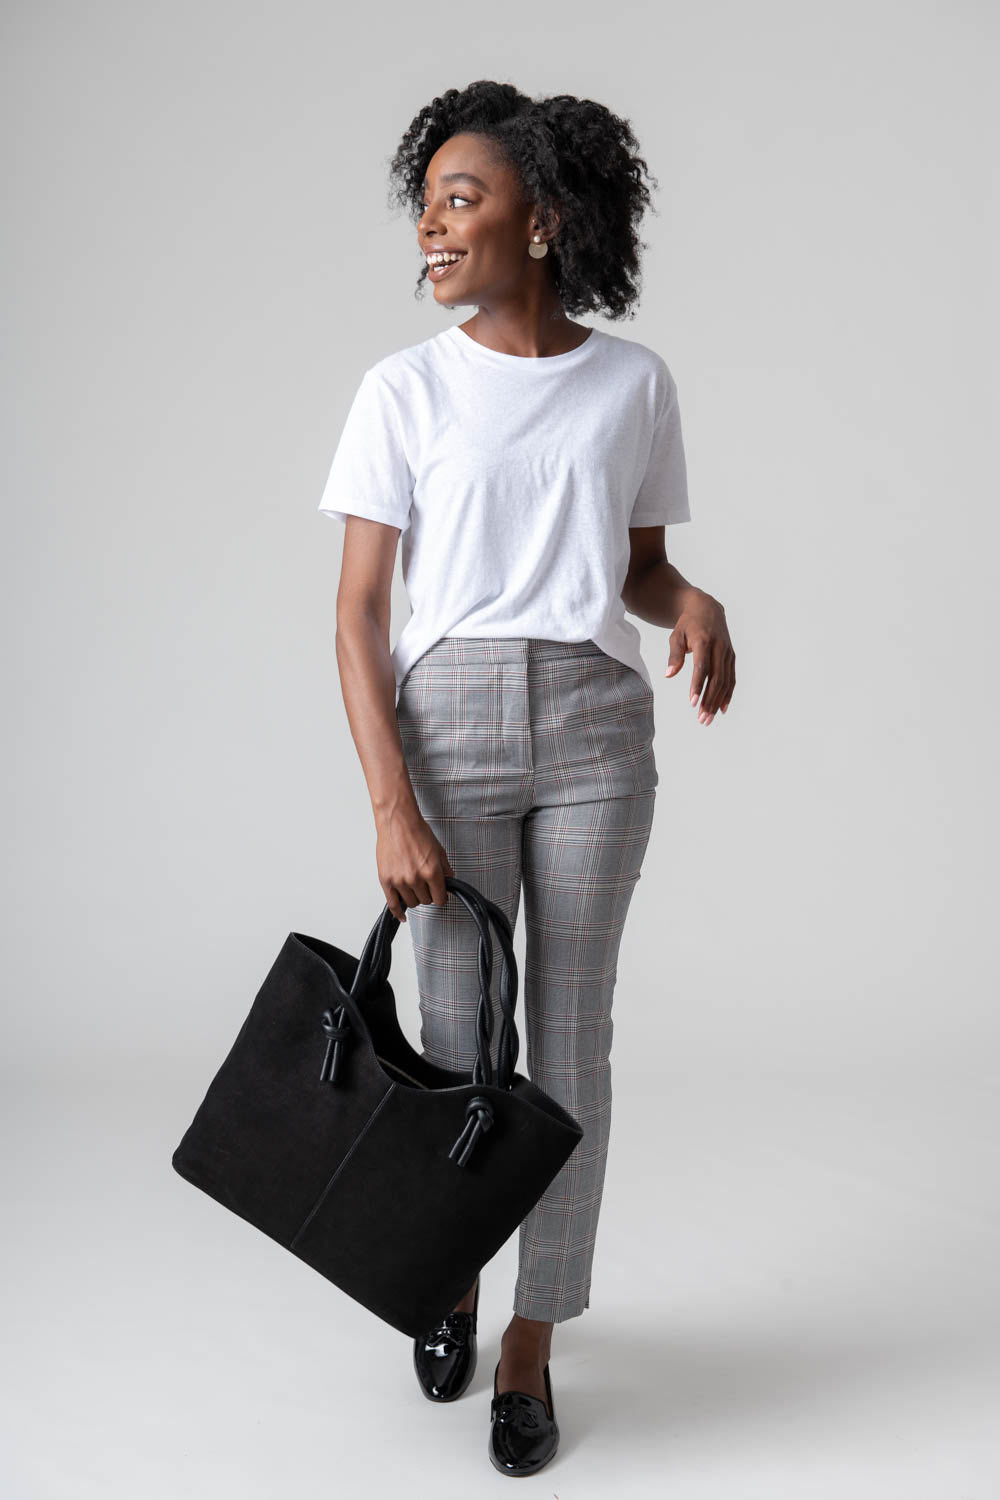 Neely And Chloe No. 45 The Twist Tote Nubuck model